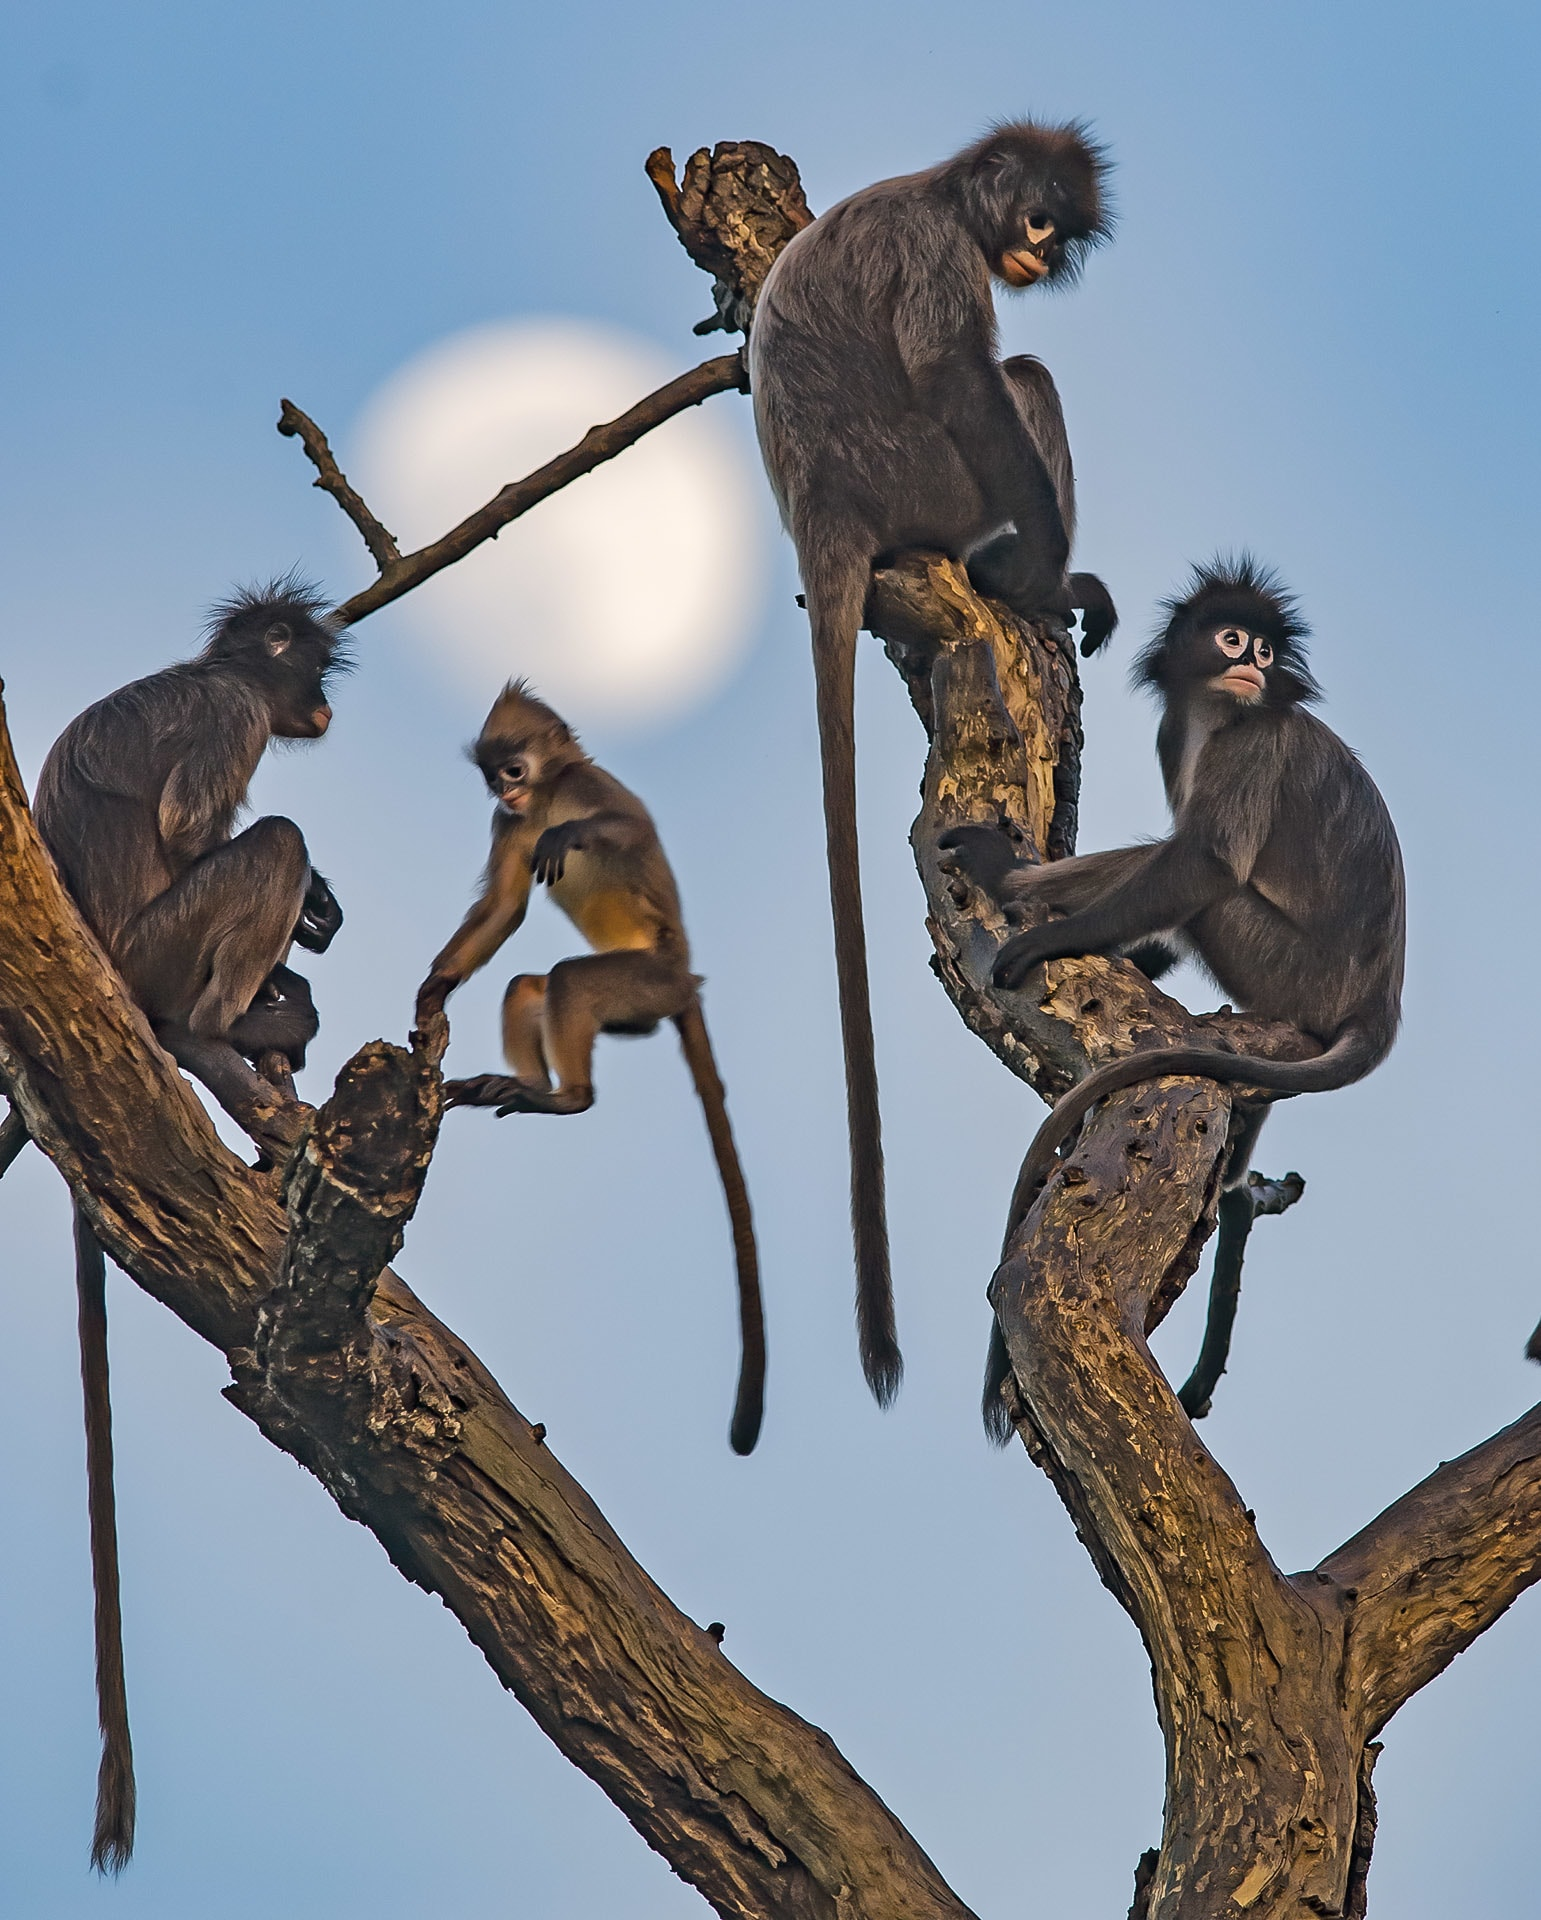 Phayre's langurs live in groups of 6-30 individuals with one or many adult males.